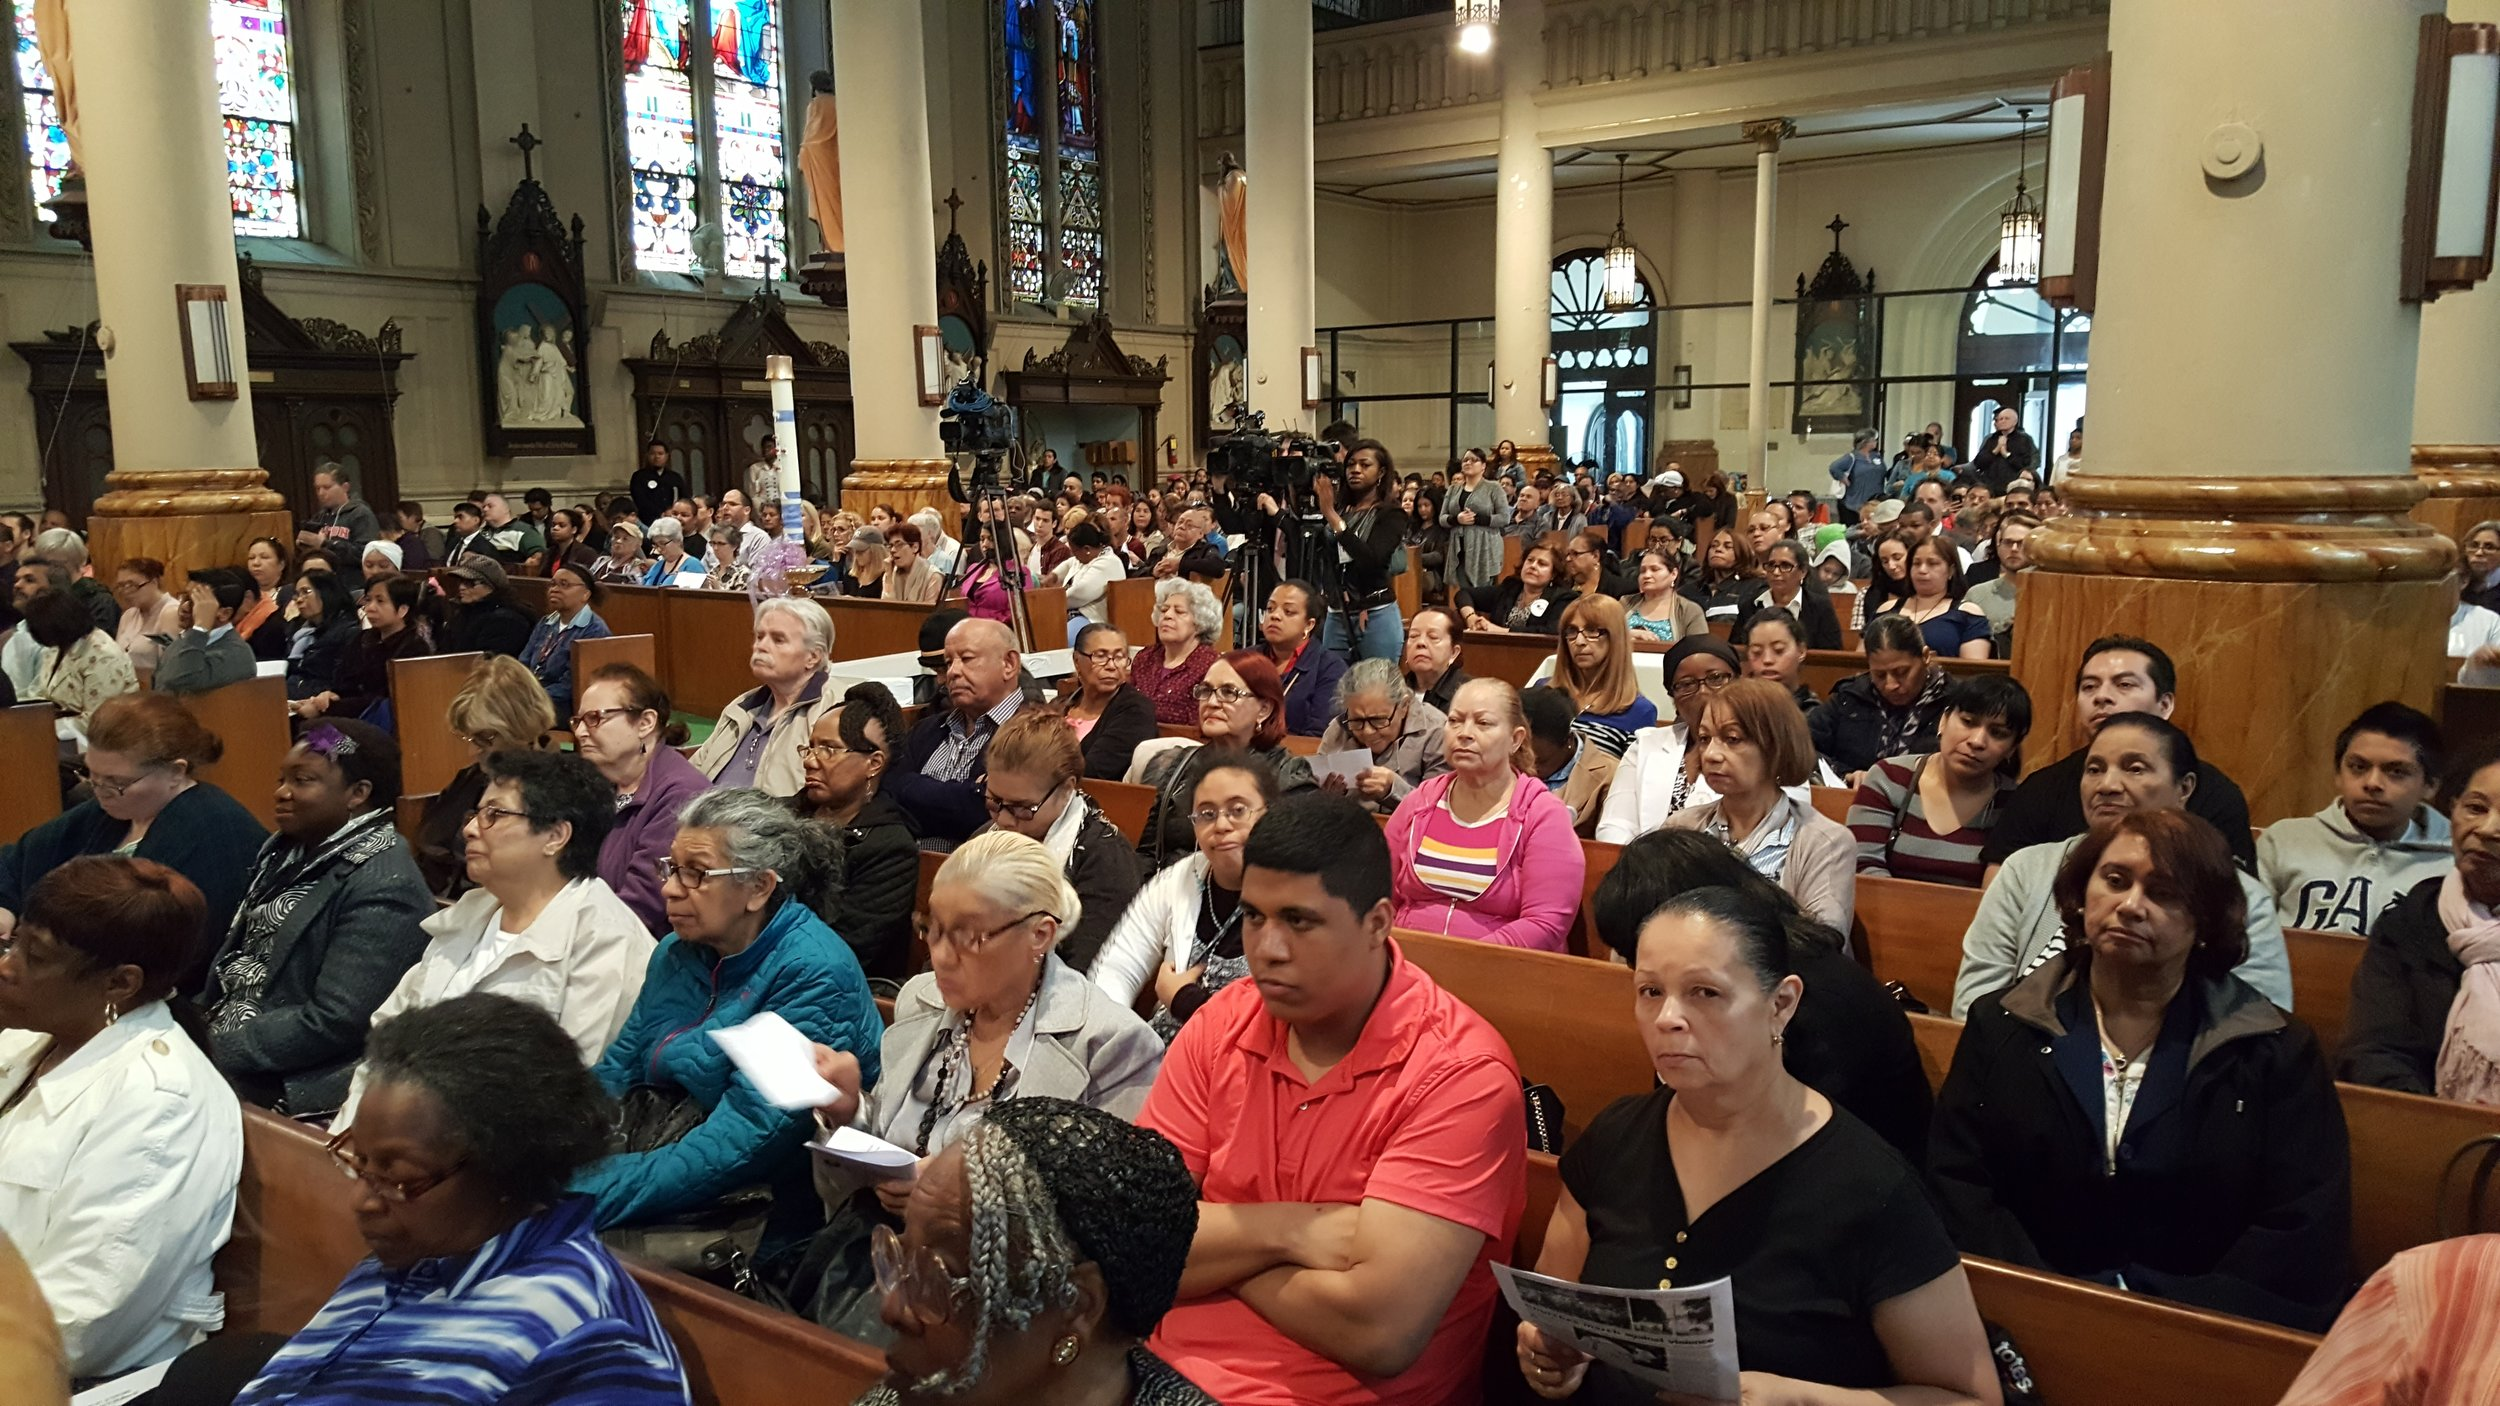 Over 650 NYC leaders gather to take action with Commissioner O'Neill